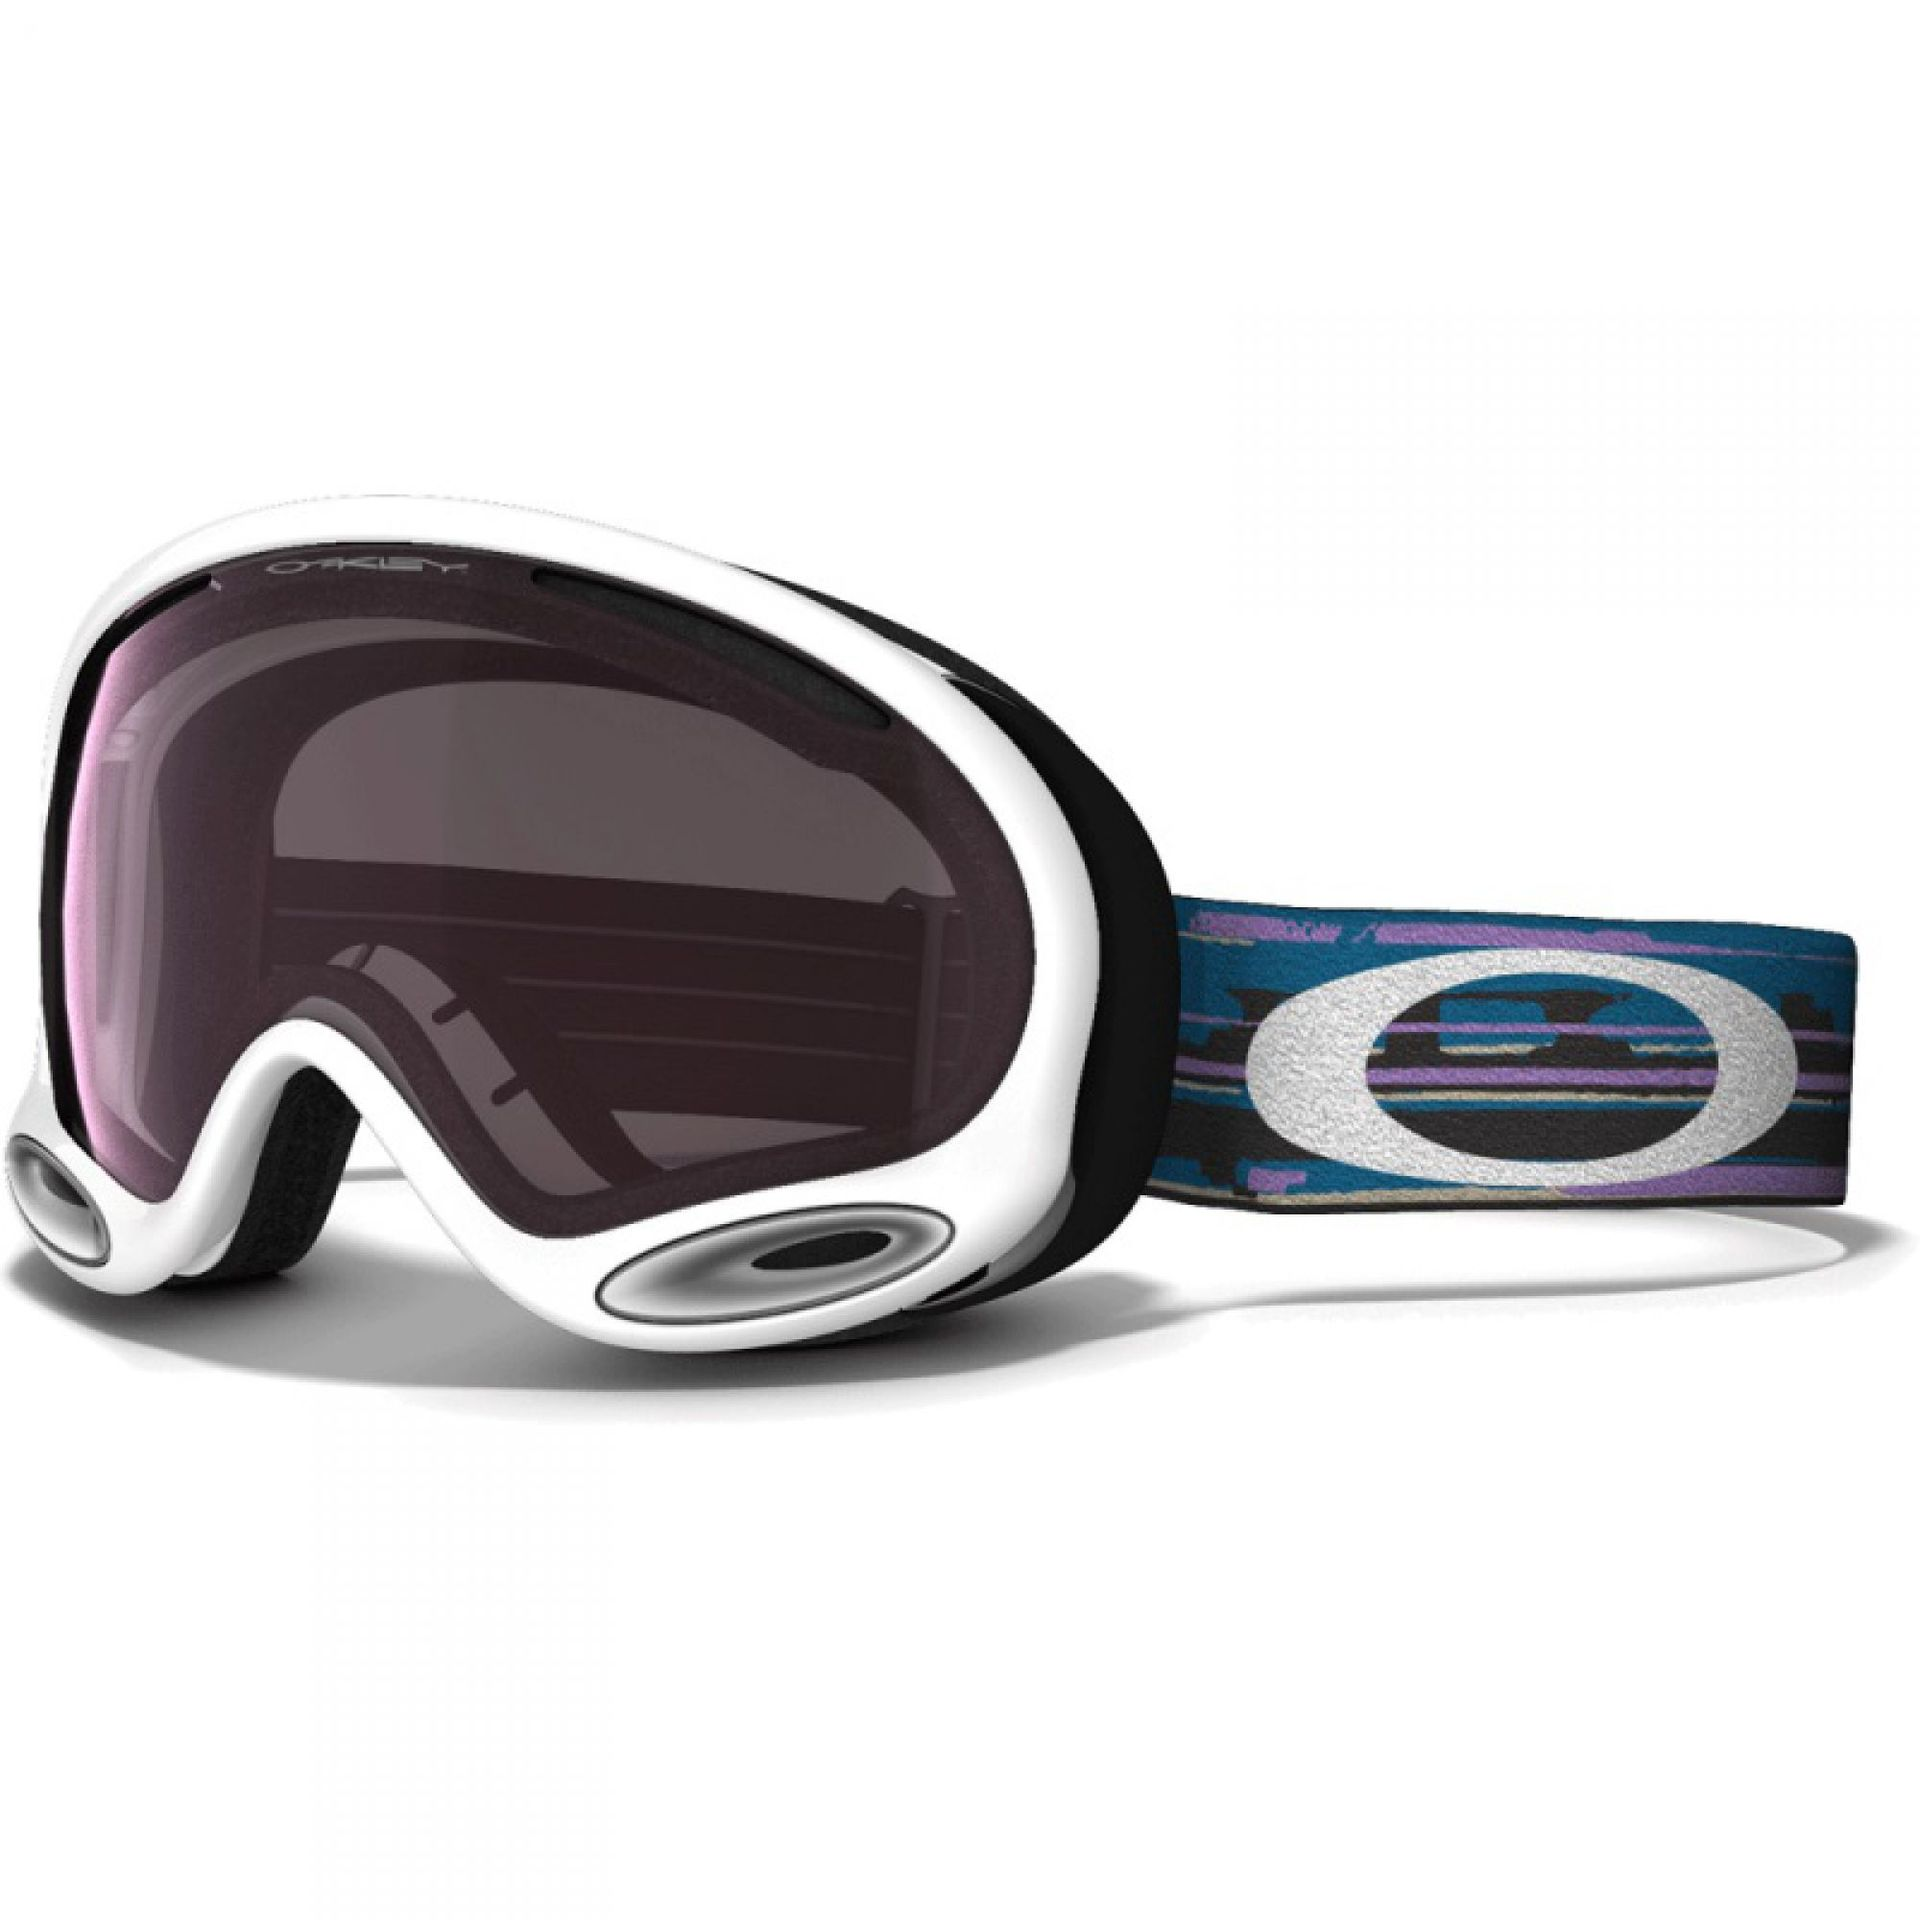 GOGLE OAKLEY A-FRAME RIPPED BLACK ROSE